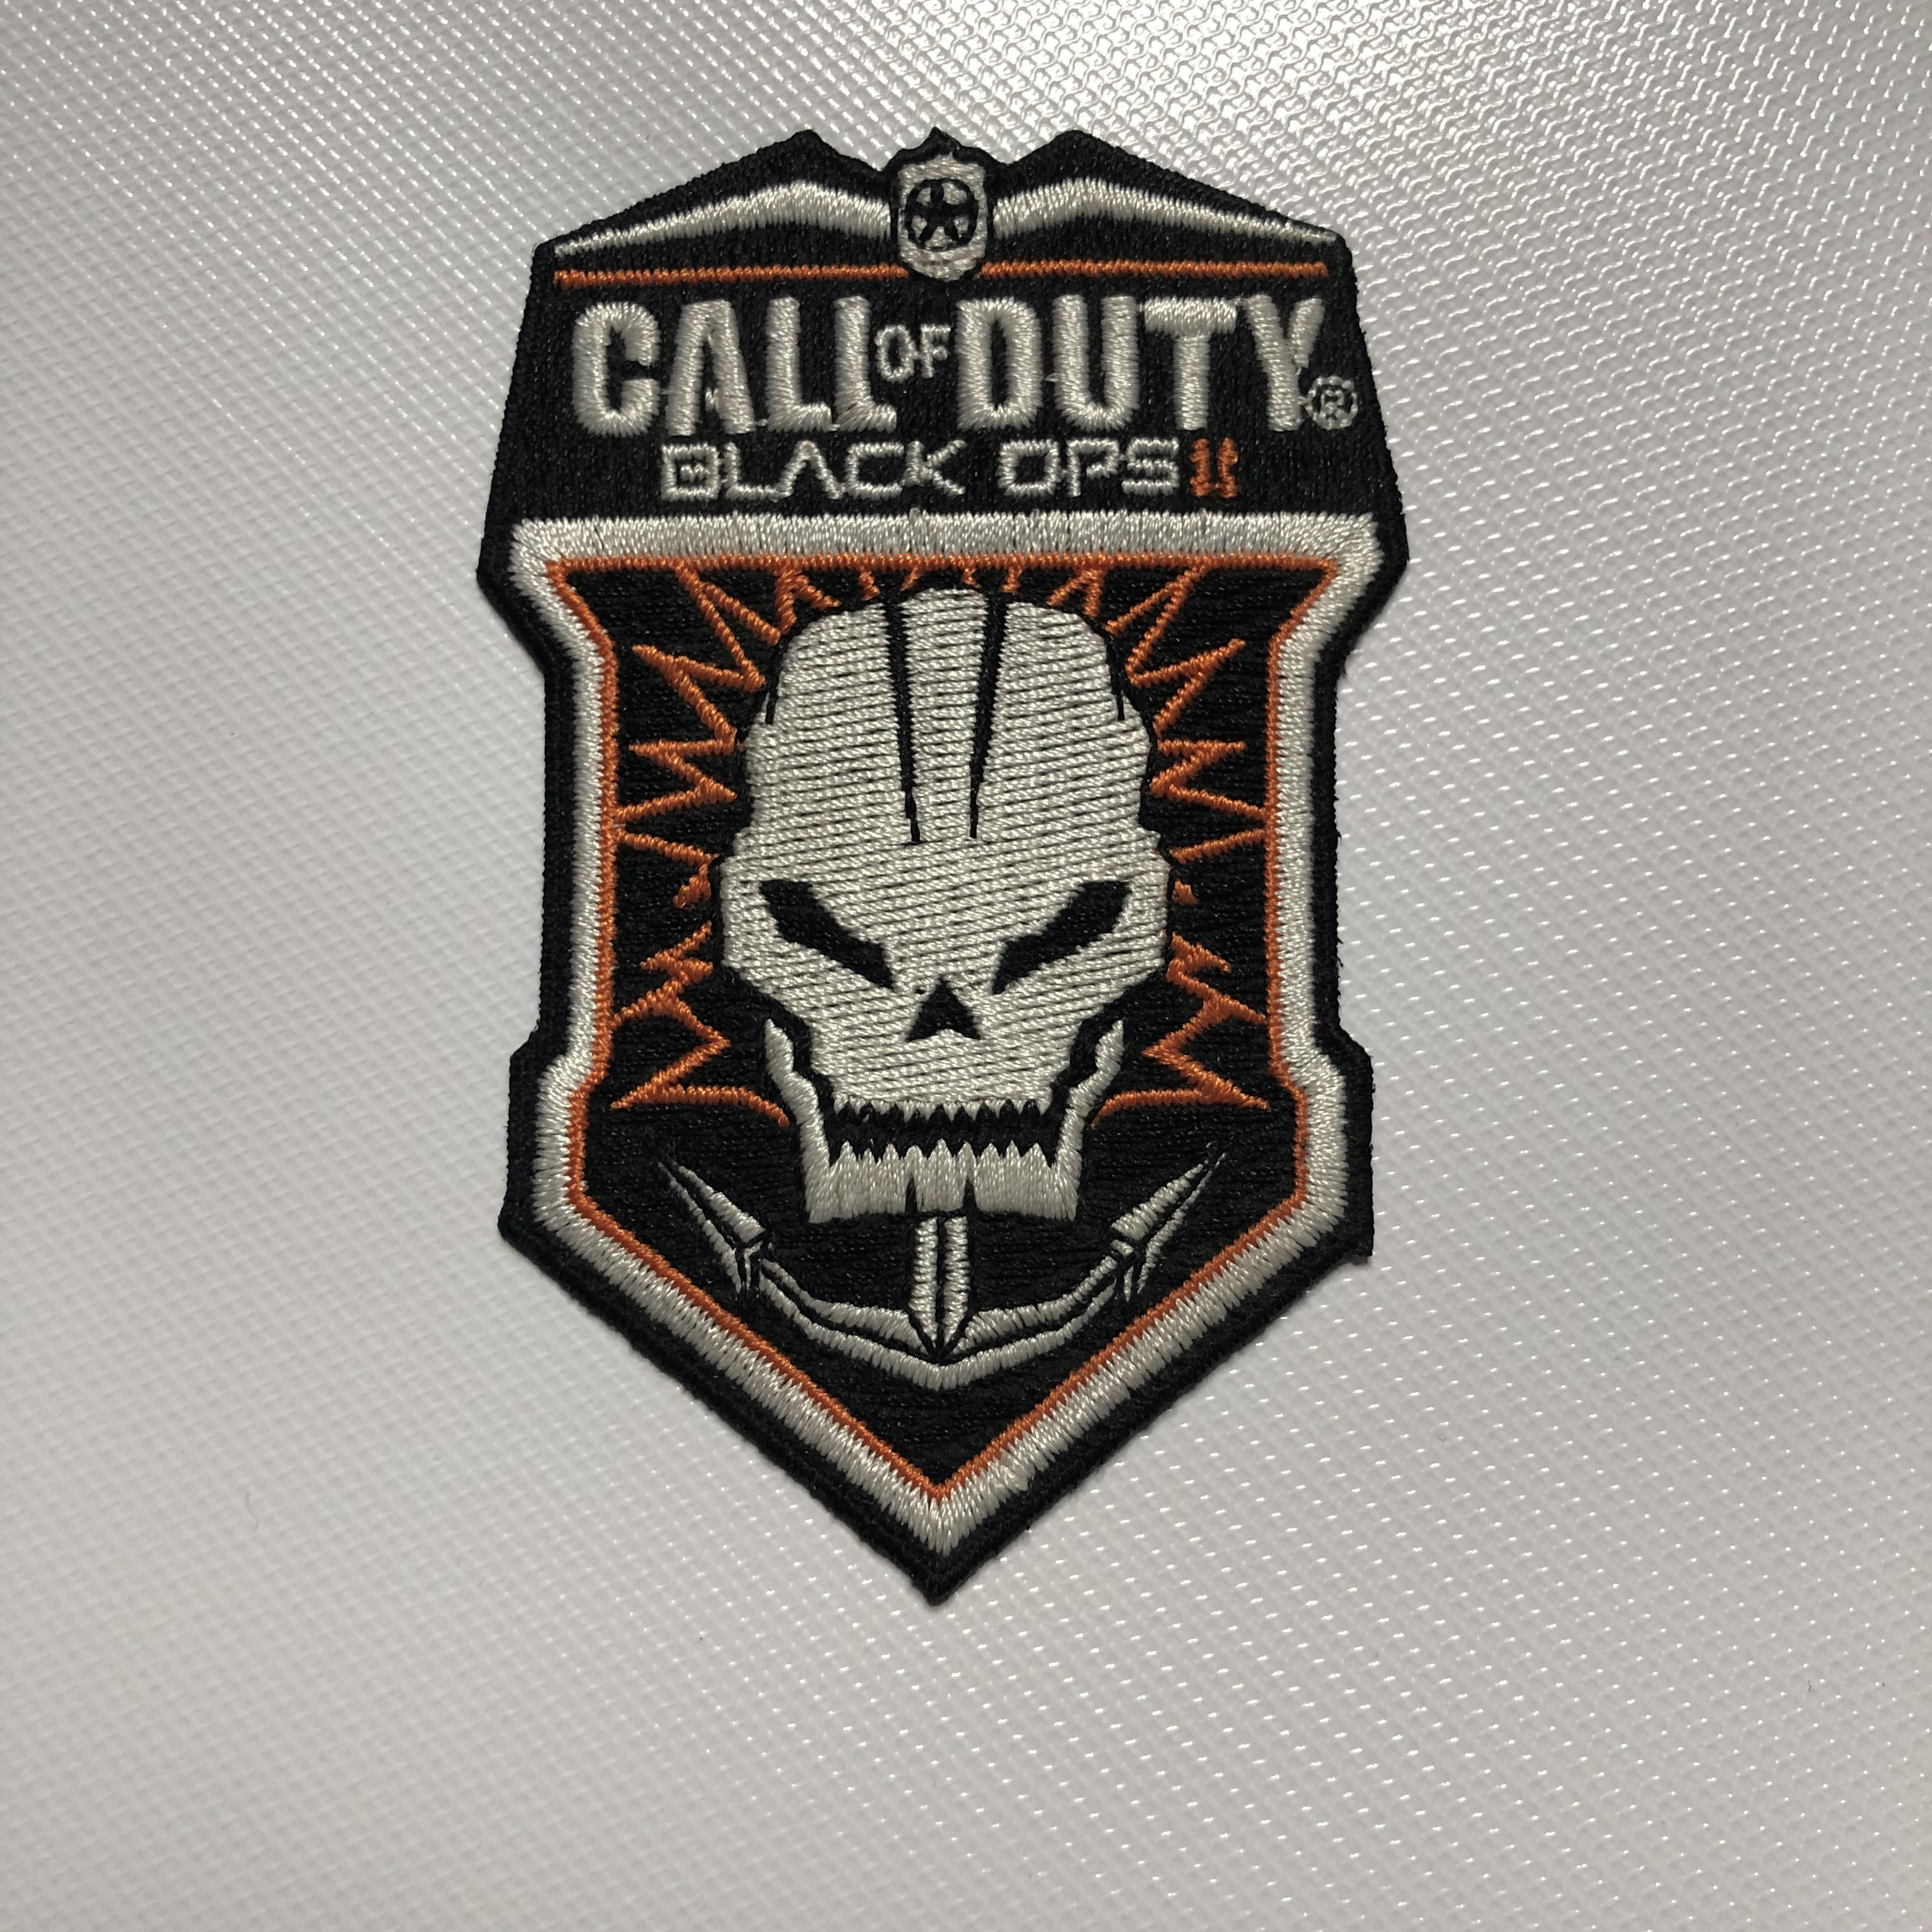 Call Of Duty Black Ops 2 Commemorative Patch Brand Depop